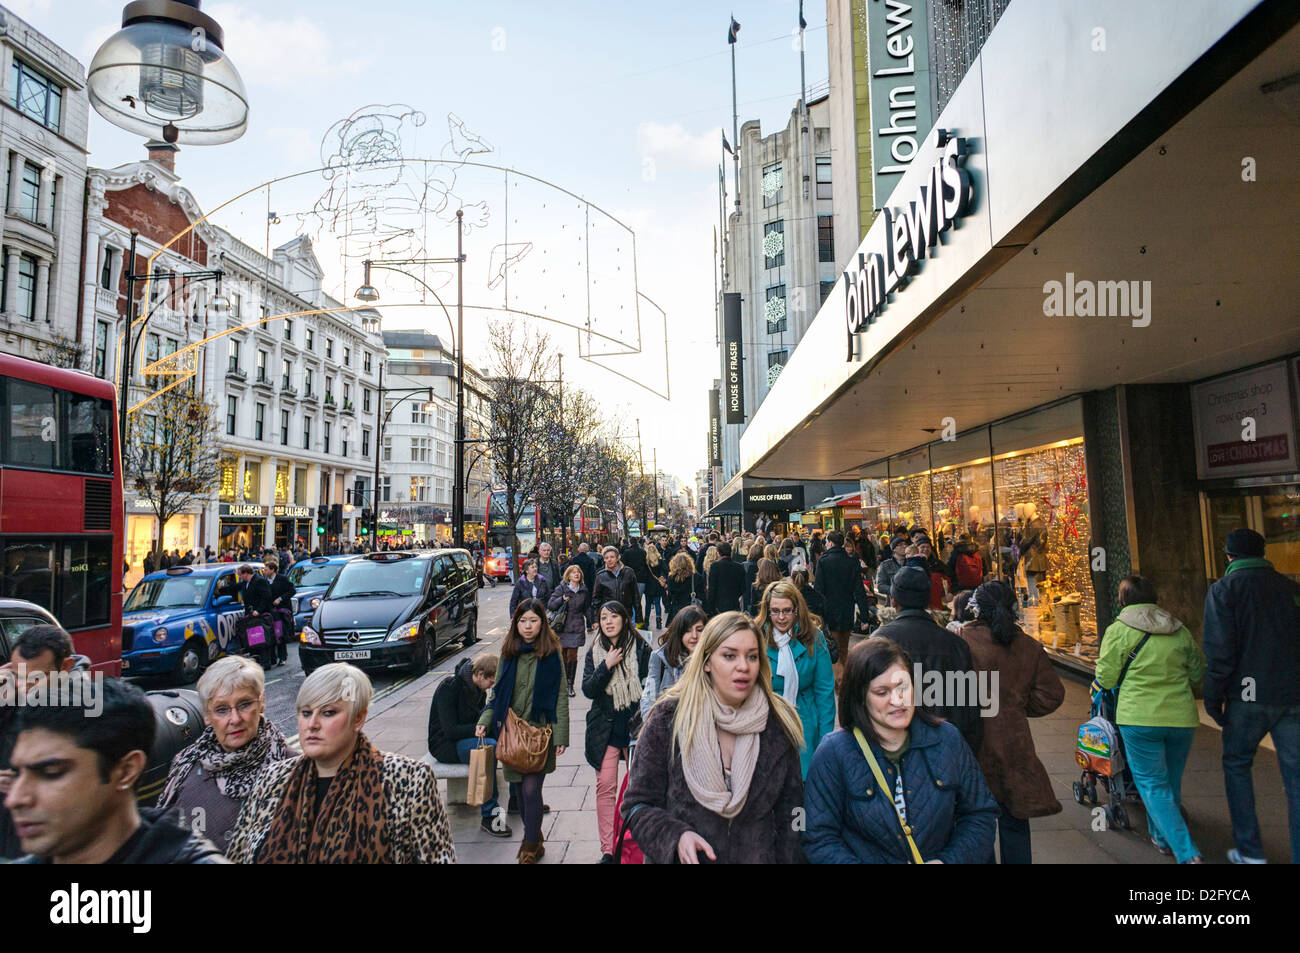 Shoppers on a busy London street, Oxford Street, London, UK - Stock Image